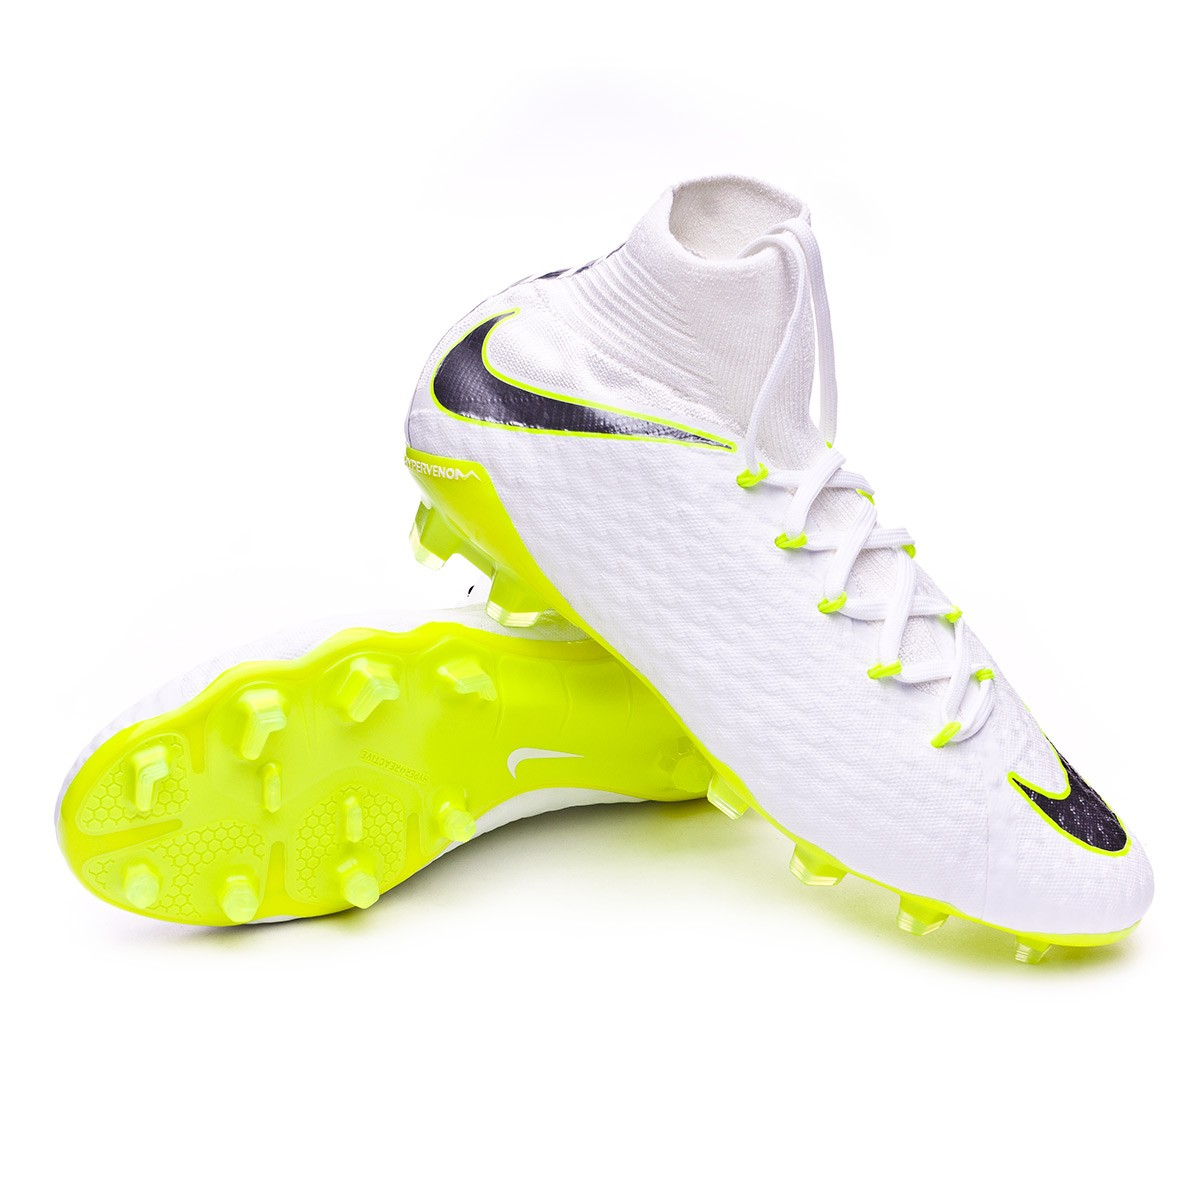 c83497557d52 Football Boots Nike Hypervenom Phantom III Pro DF FG White-Metallic ...